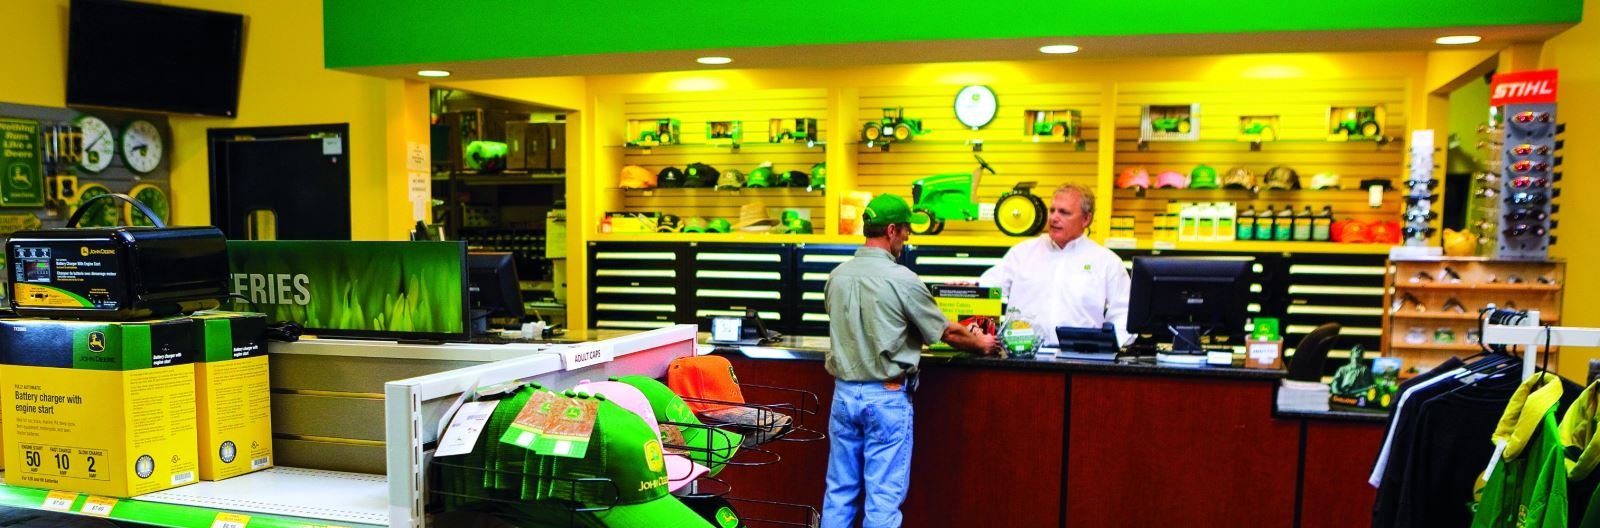 John Deere Parts, solve parts issues, we have parts